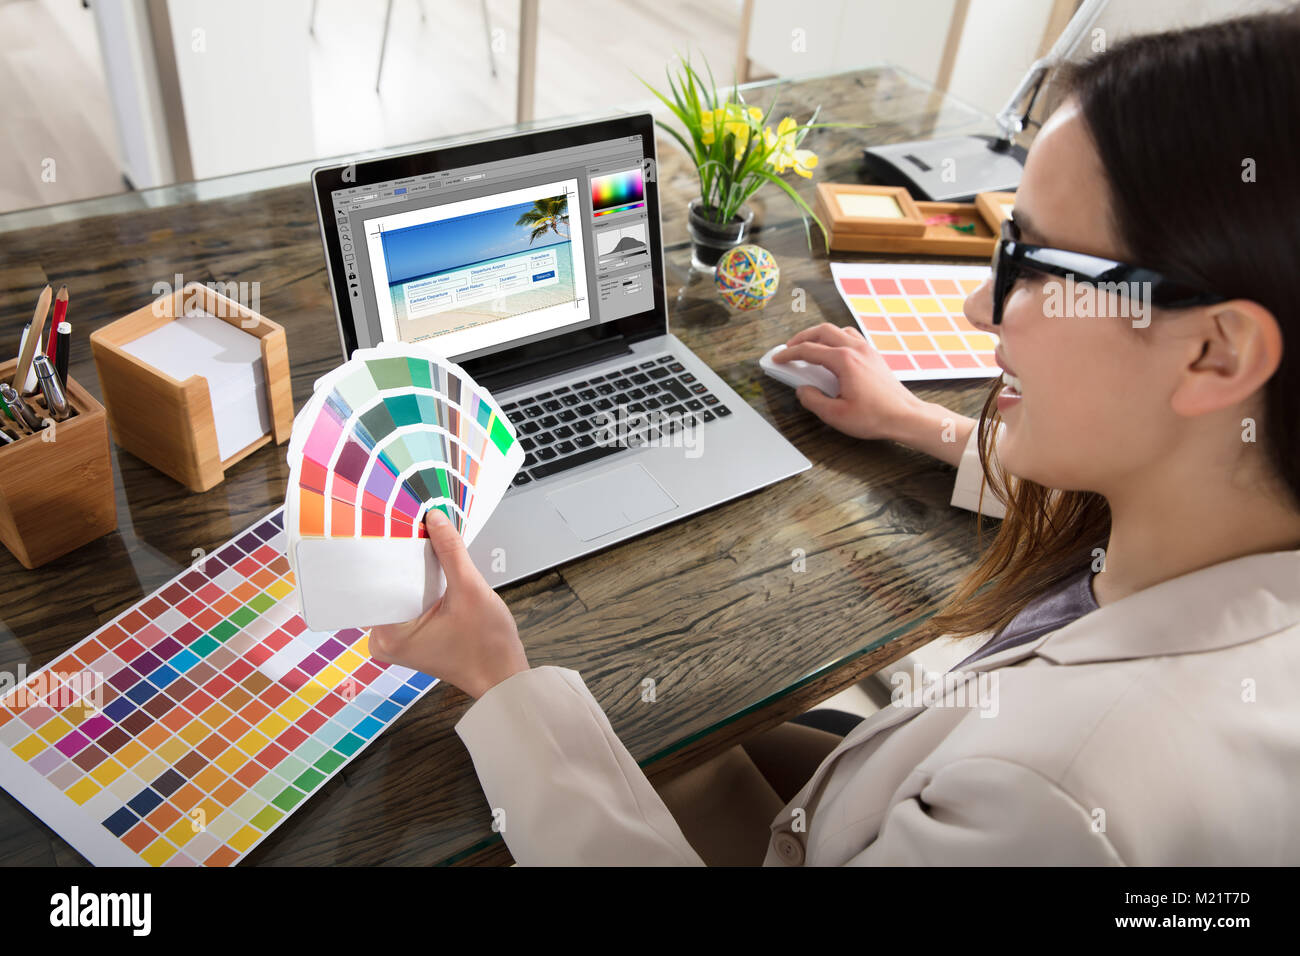 A Female Designer Using Laptop While Holding Colour Swatches In Her Hand - Stock Image